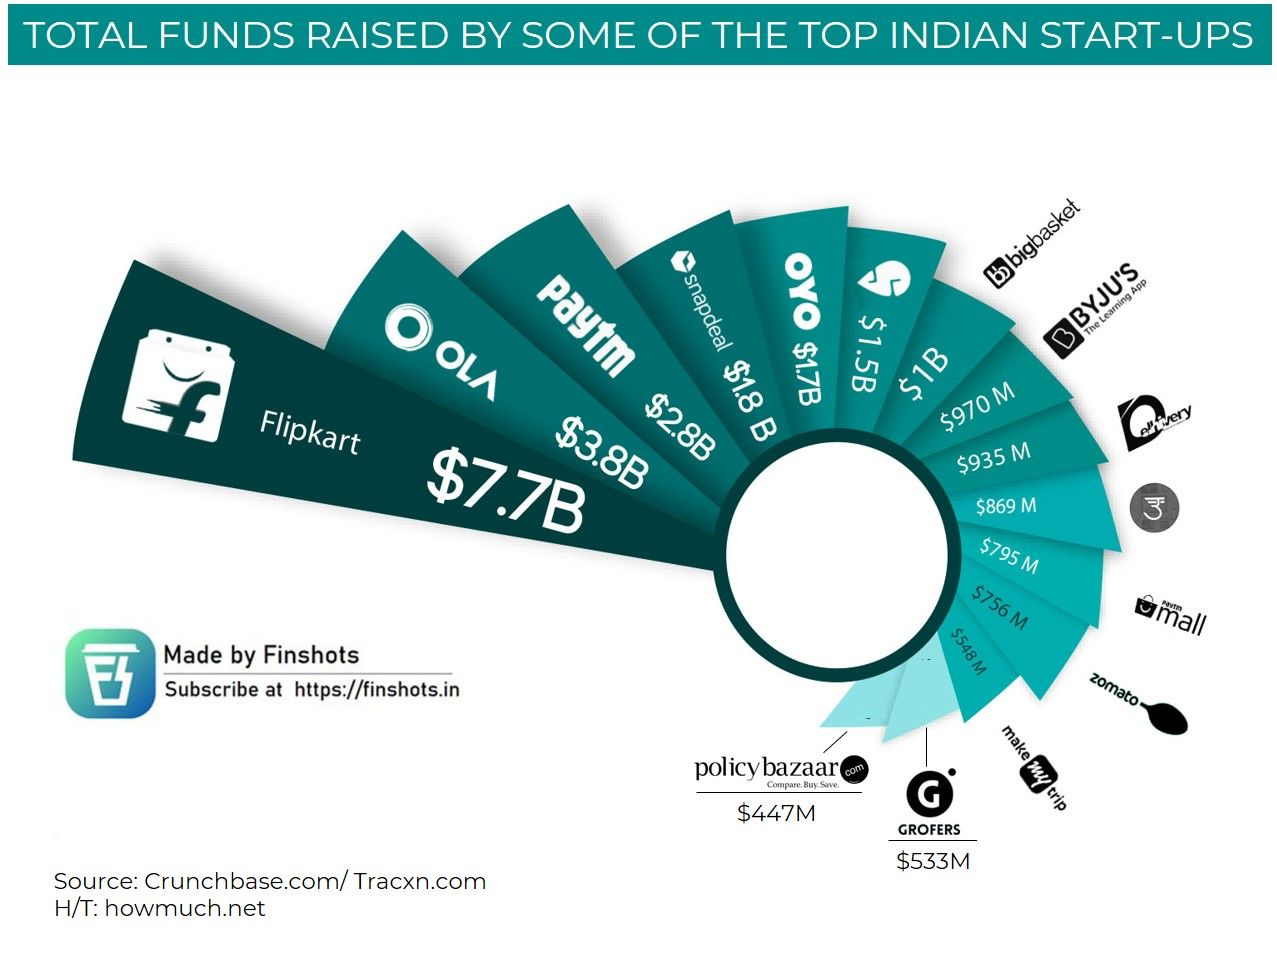 Funds raised by some of the top indian startups till date.